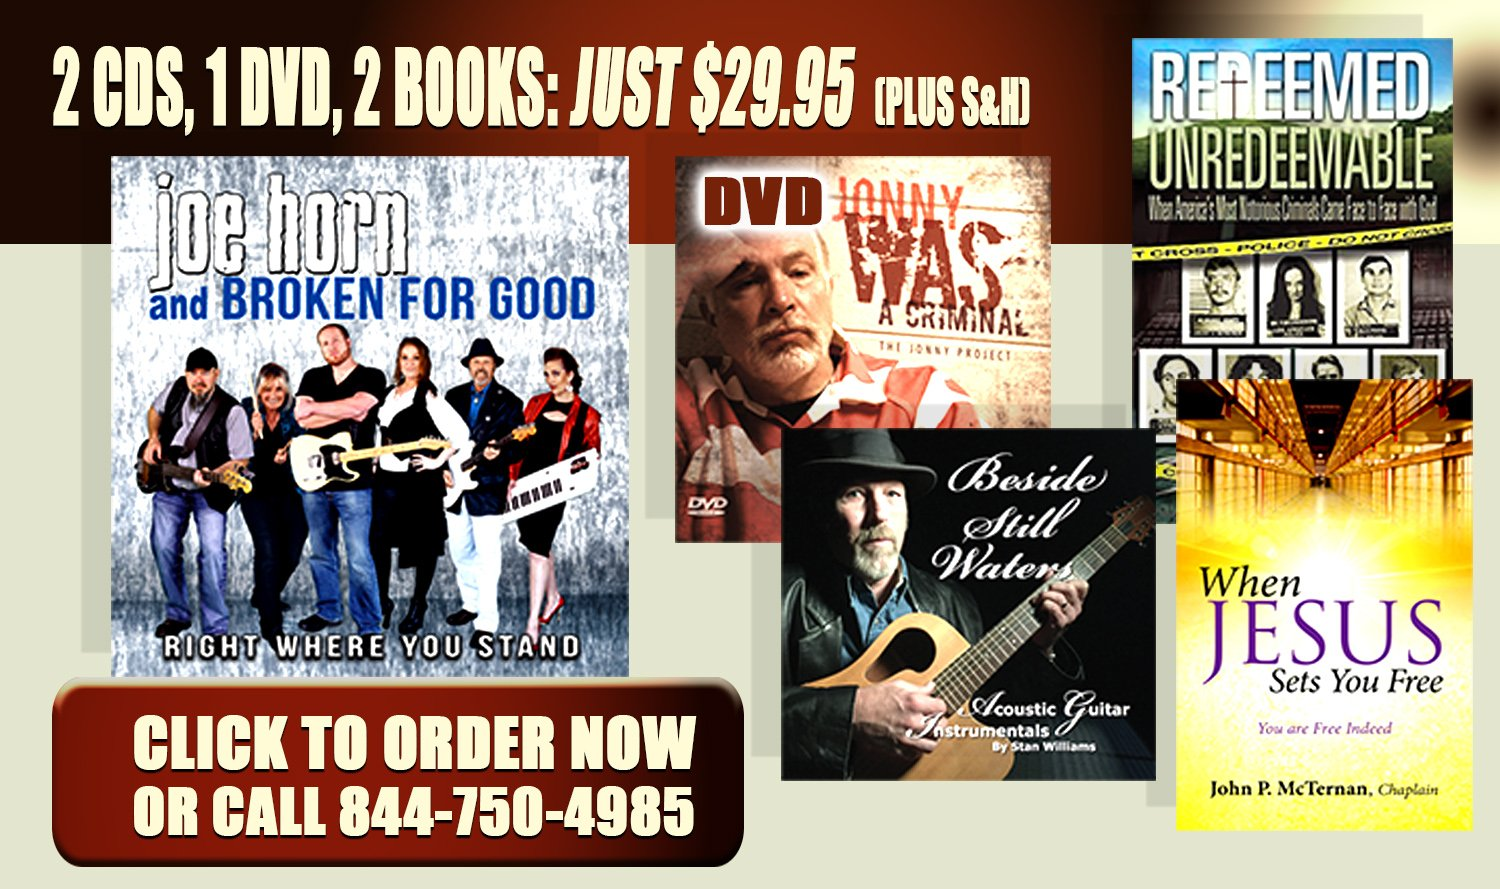 FREE BOOKS & DVDS WITH THE CHRISTIAN MUSIC &